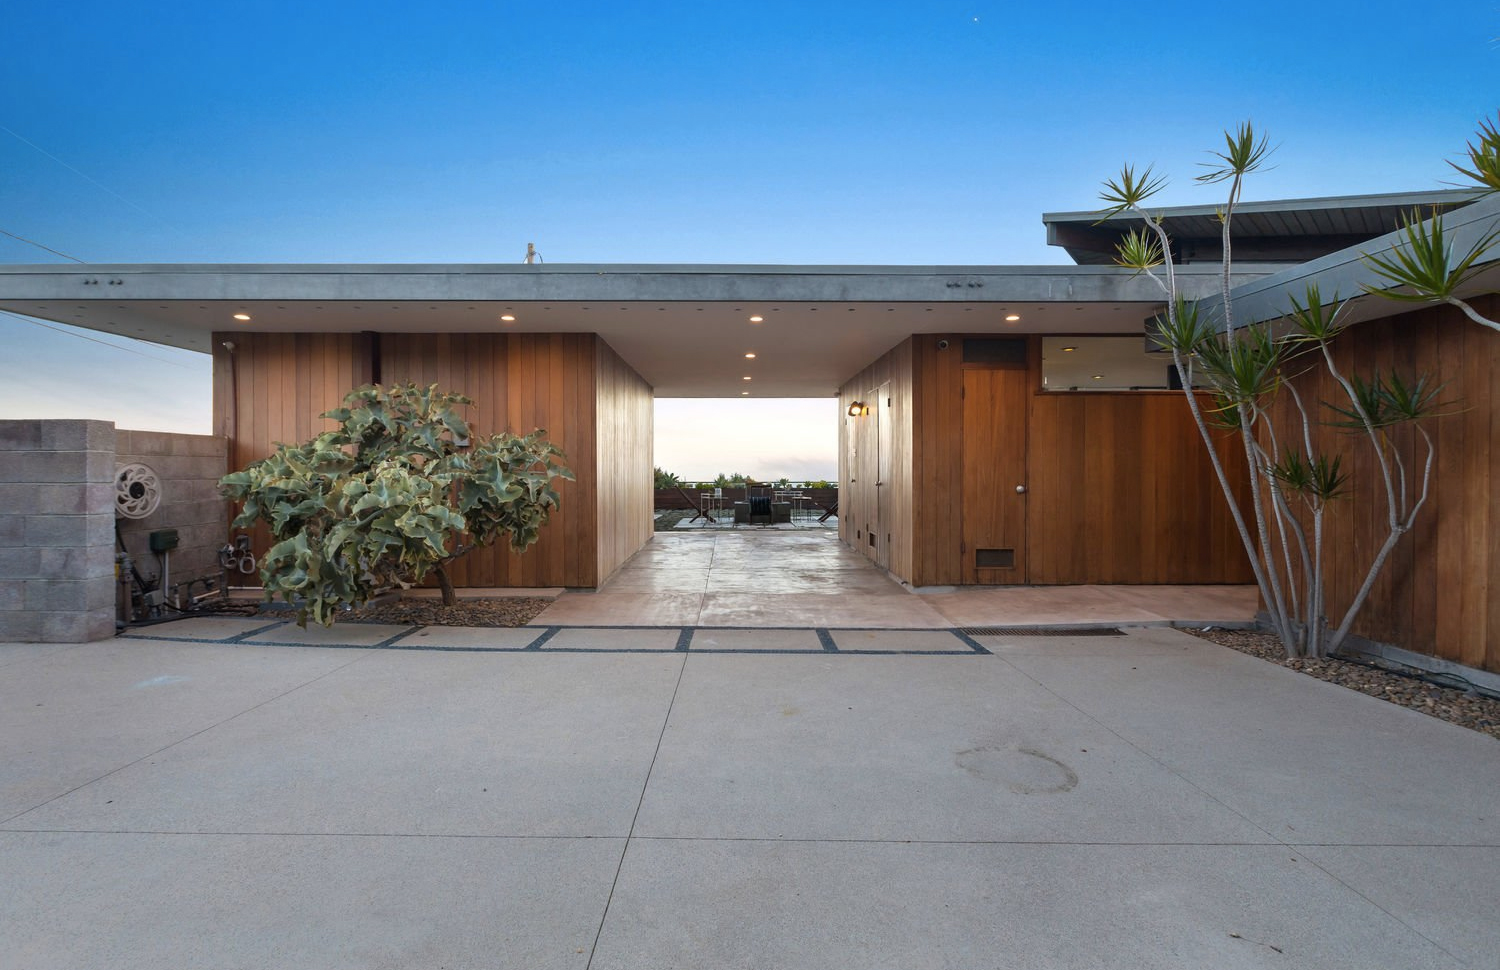 The Schneidman House is for sale in Los Angeles